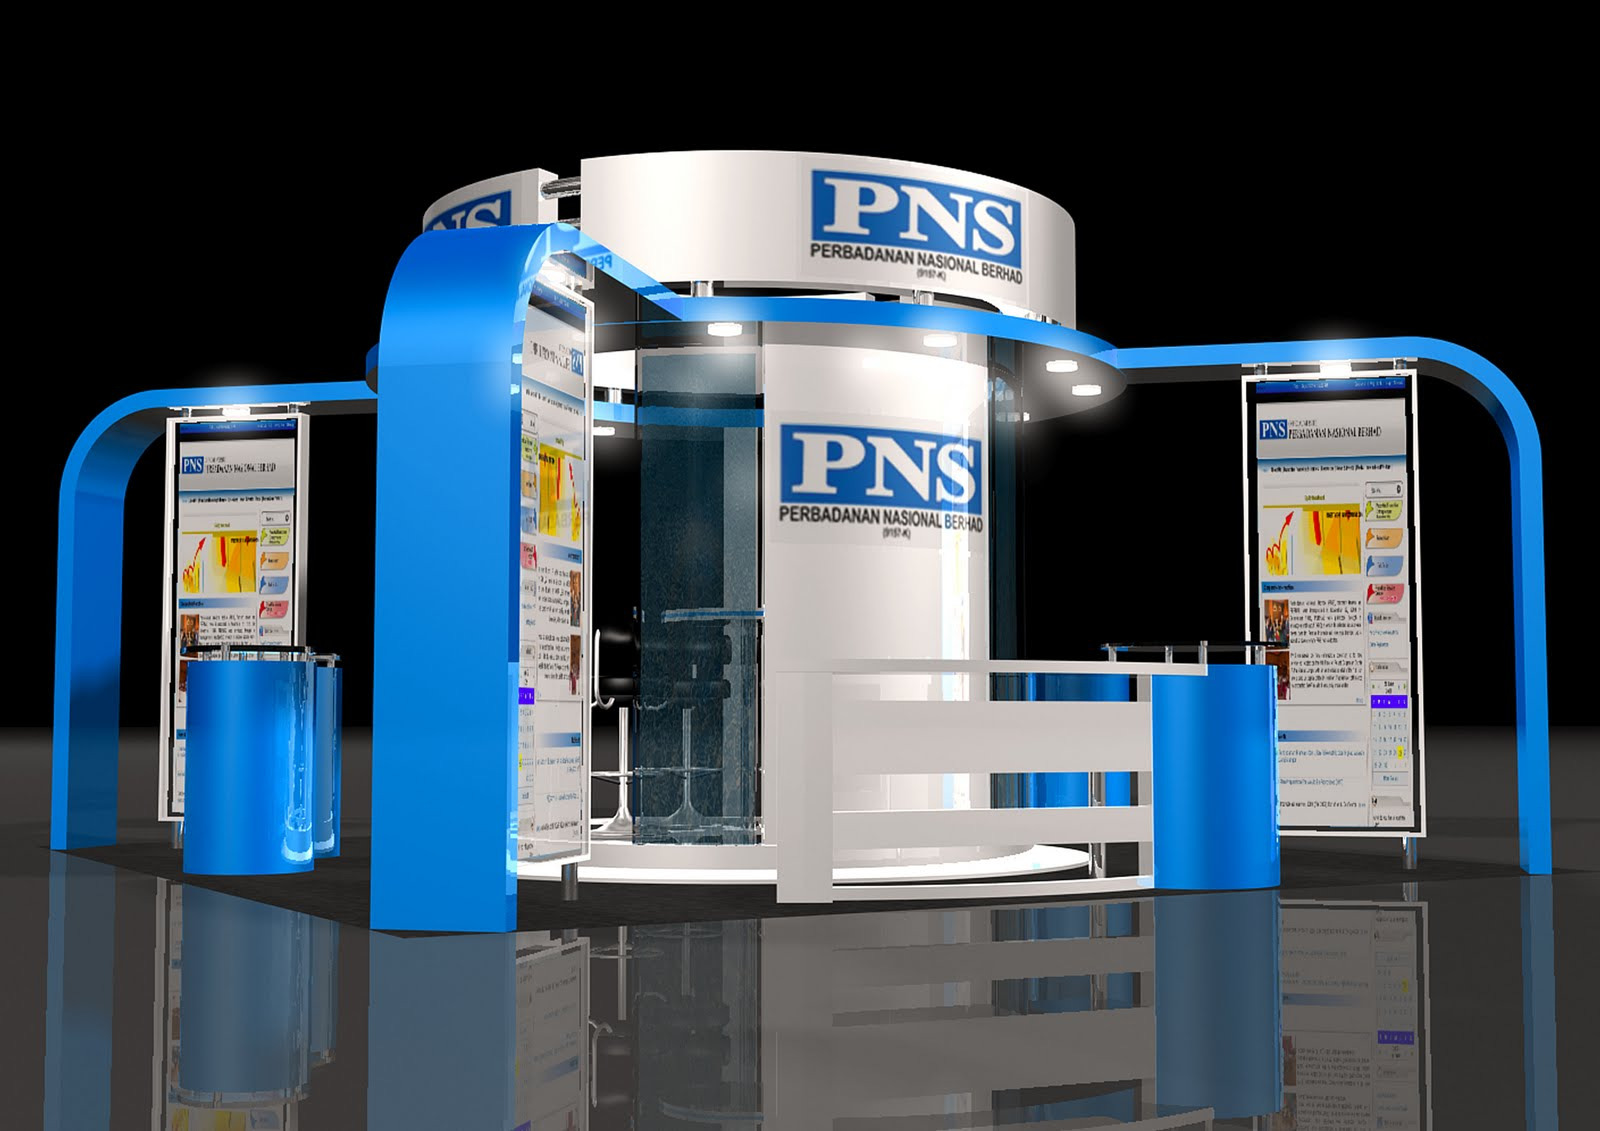 Exhibition Booth In : Deepsrepyh exhibition booth design